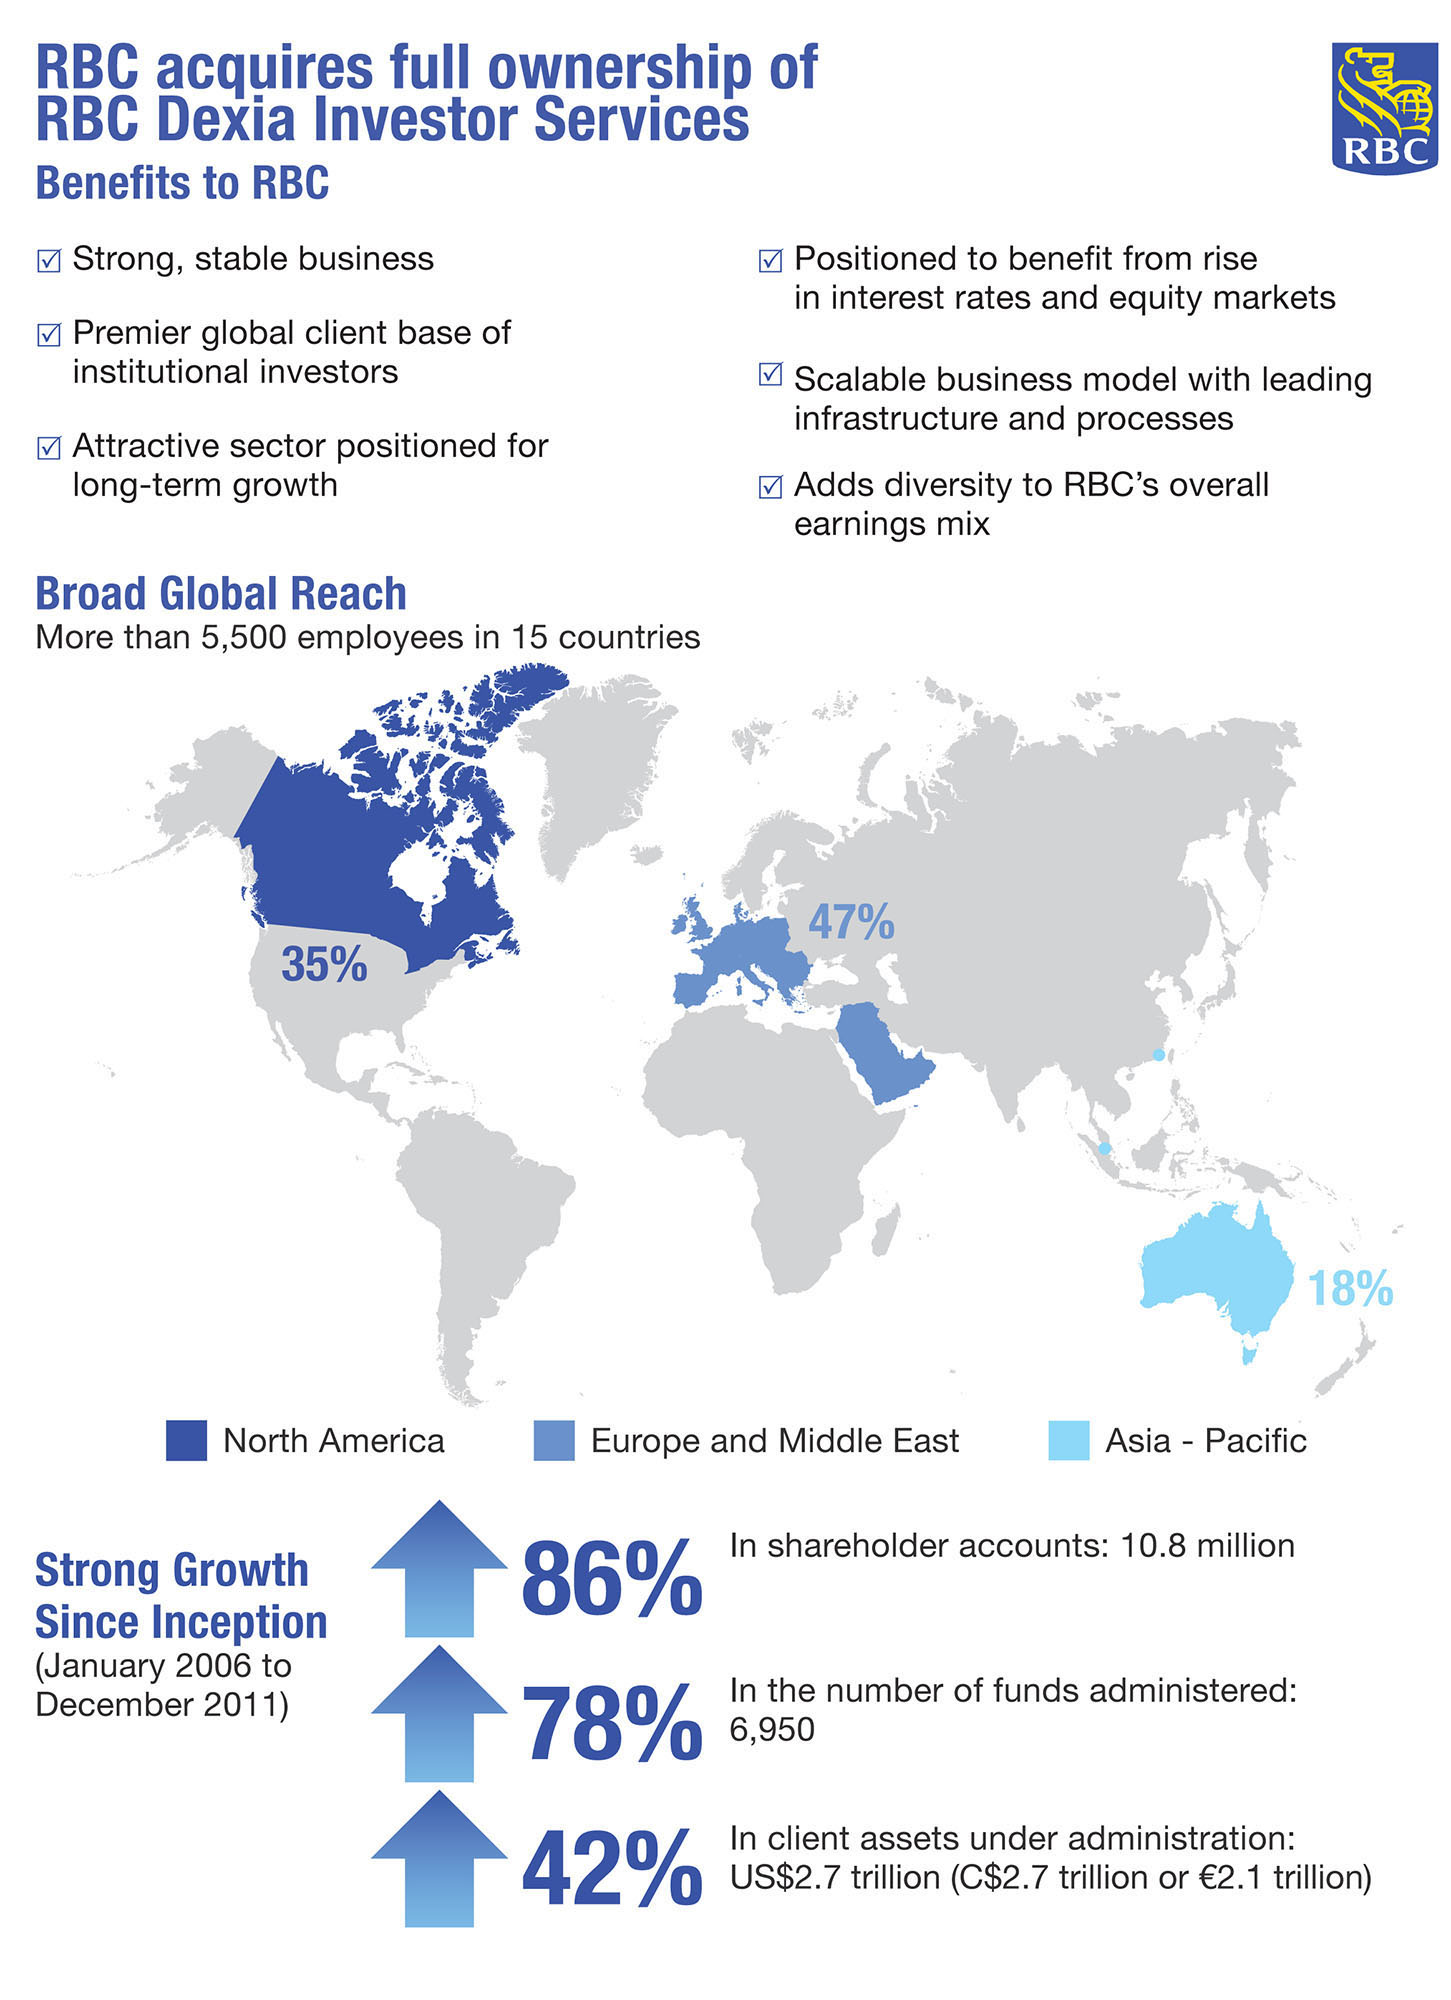 Royal bank of canada to acquire full ownership of rbc dexia investor increases ability to benefit from strong stable business with global institutional client base and further diversifies earnings mix cheaphphosting Choice Image